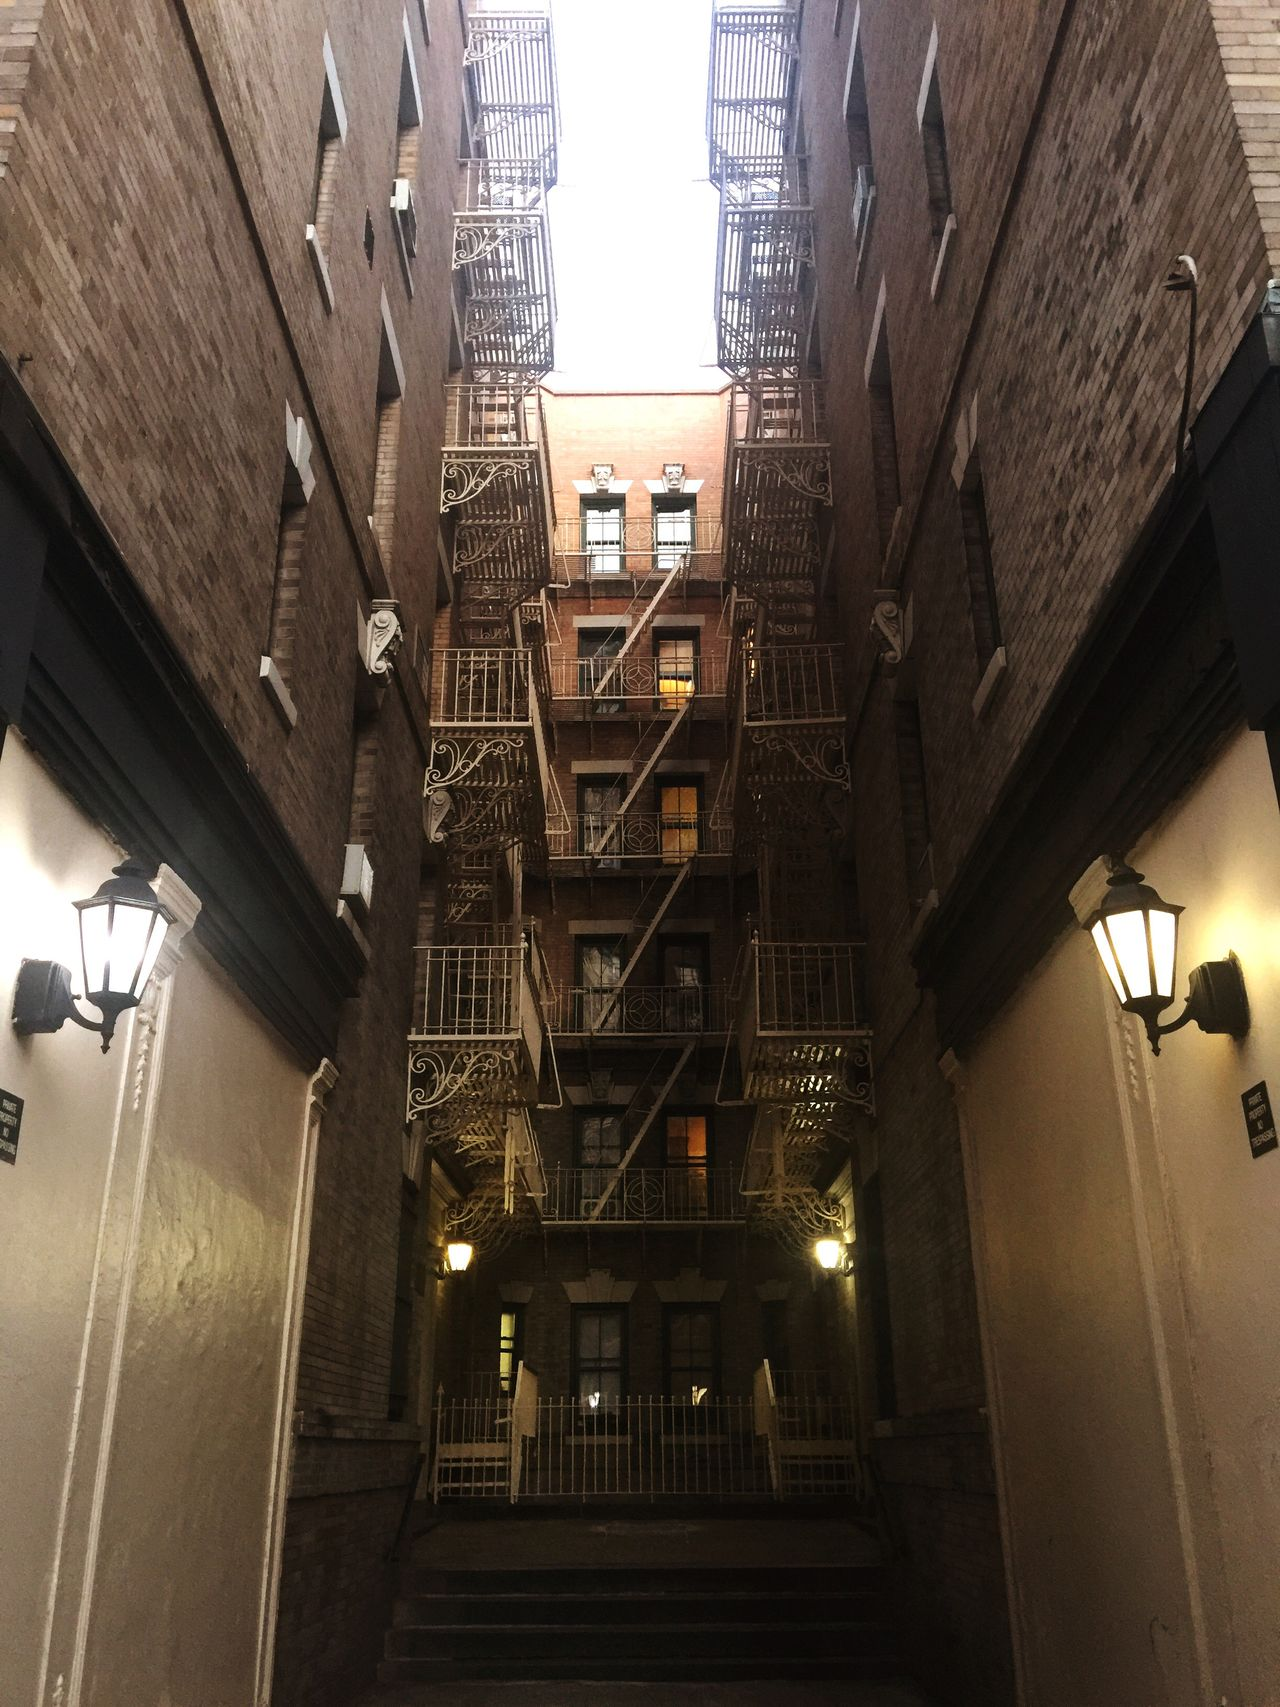 Adapted To The City Architecture Staircase Low Angle View Illuminated Fire Escape Lamps House Windows Simmetry Building Exterior Beautiful